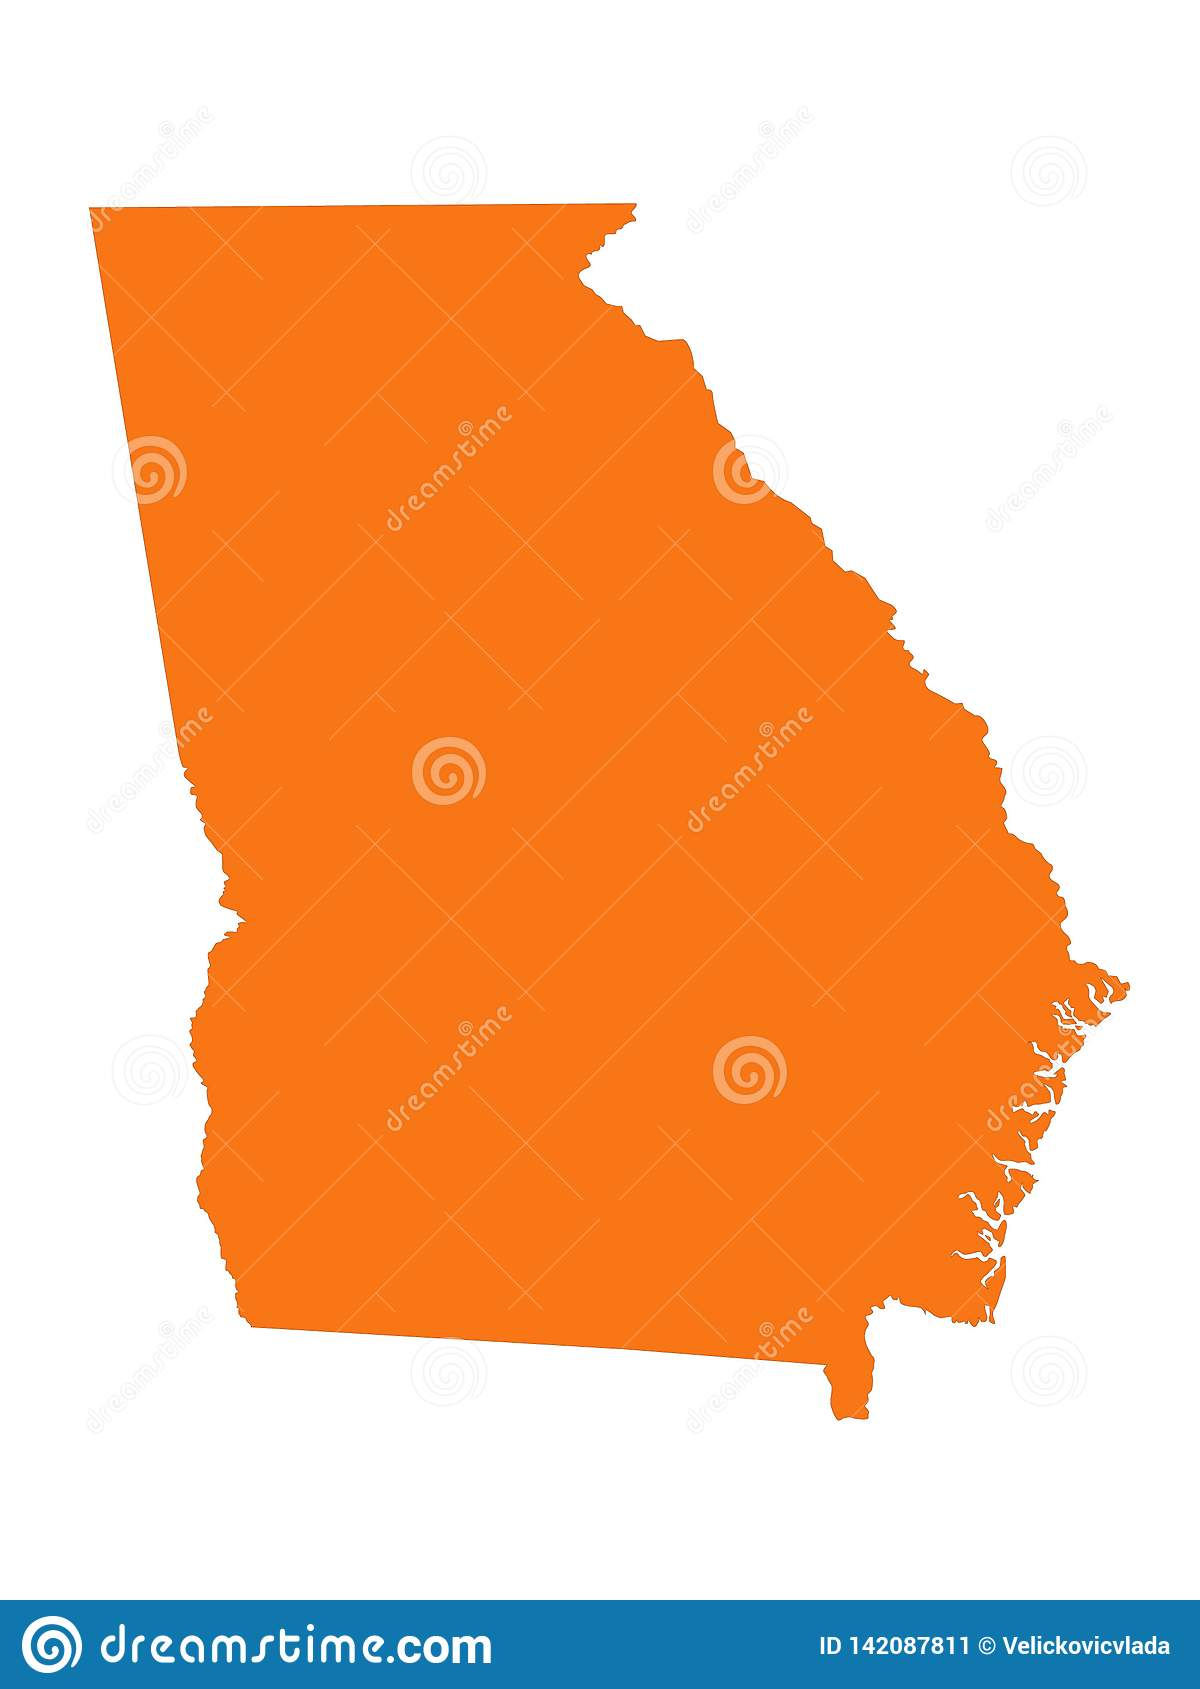 Georgia U. S. State Map - State In The Southeastern United States ...